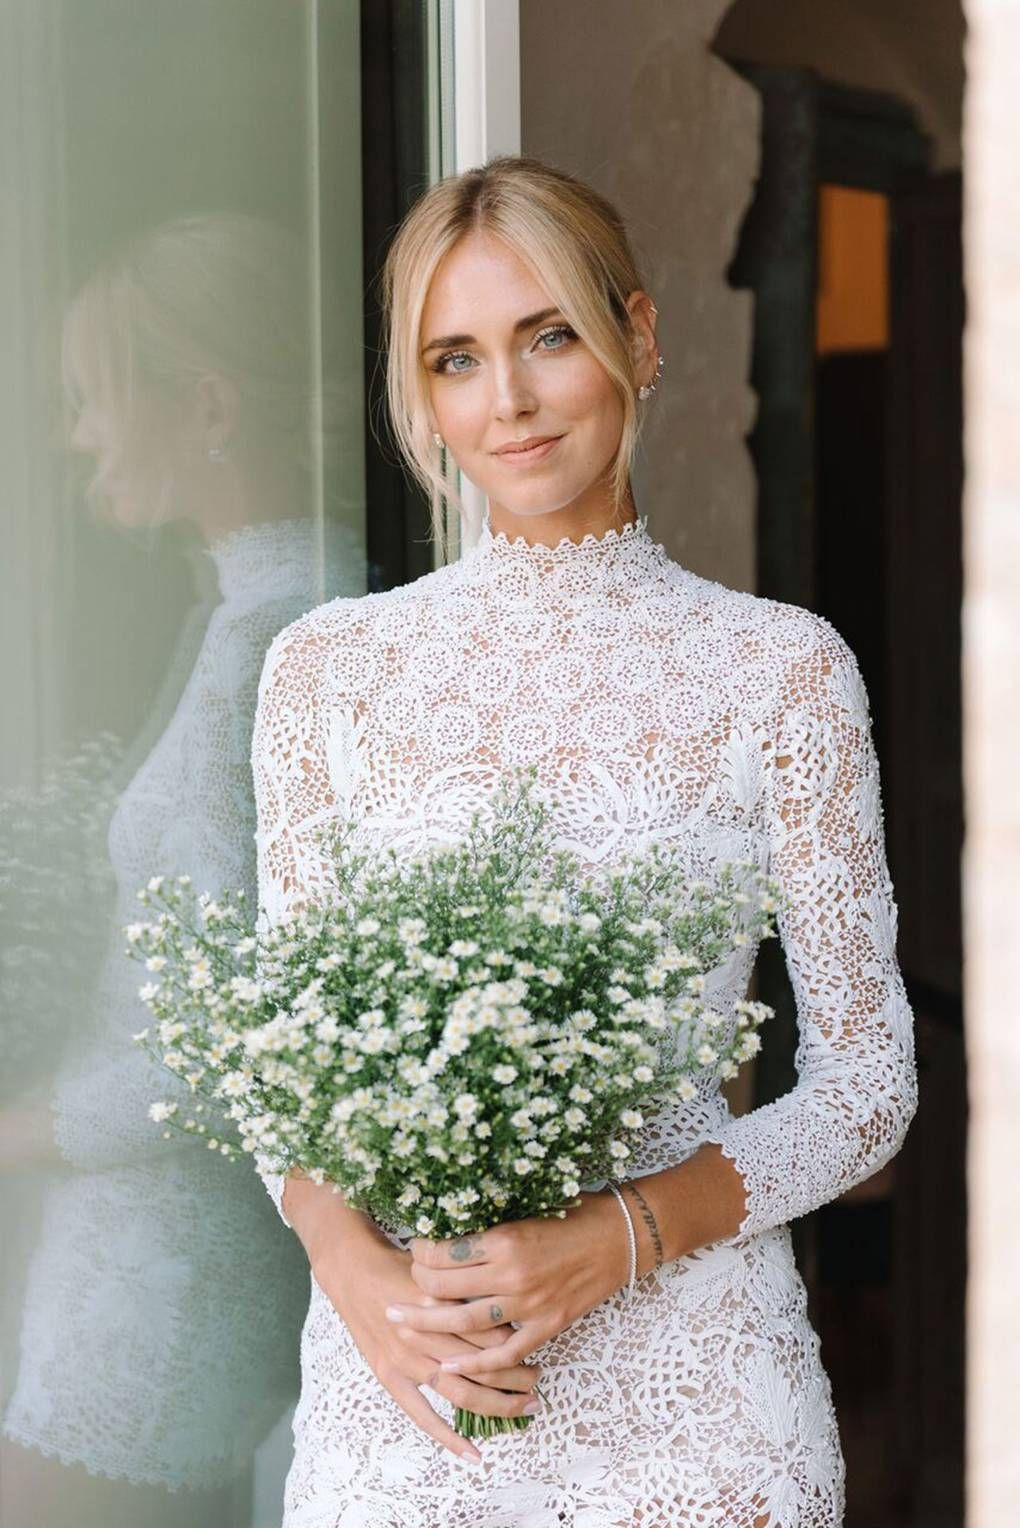 Photo of Chiara Ferragni's wedding: everything you need to know